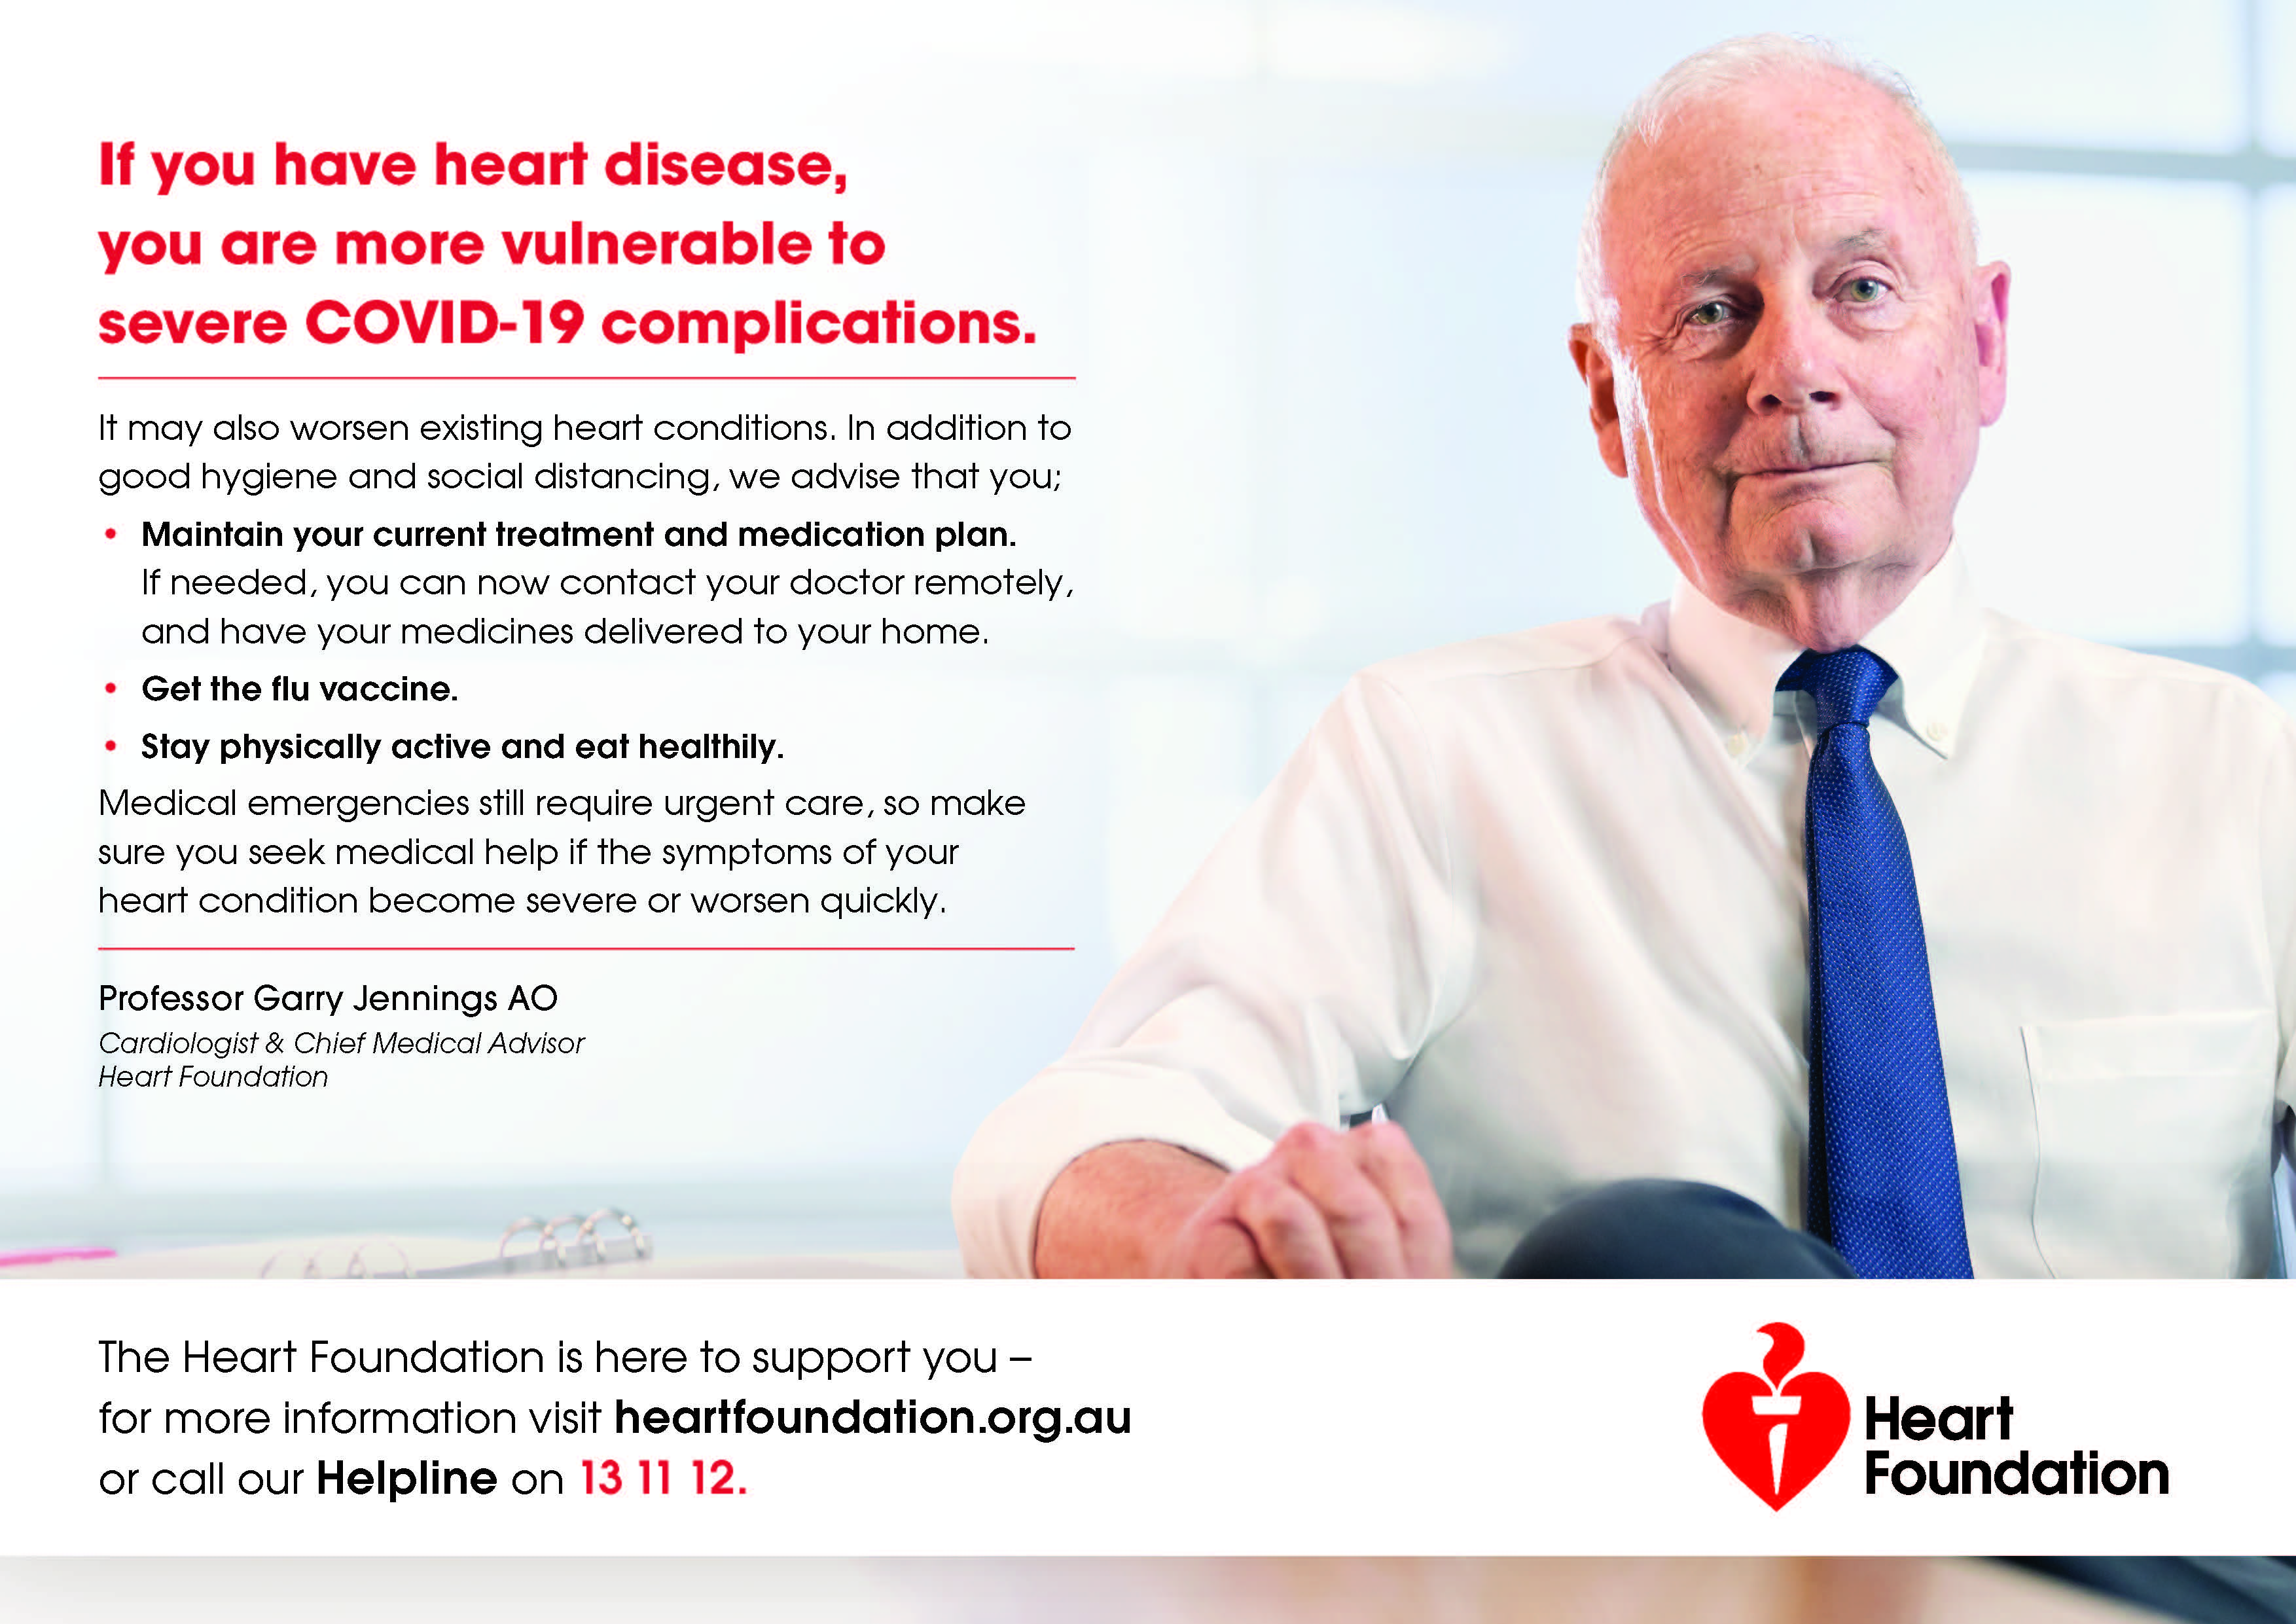 Heart Foundation launches COVID-19 and heart disease support campaign